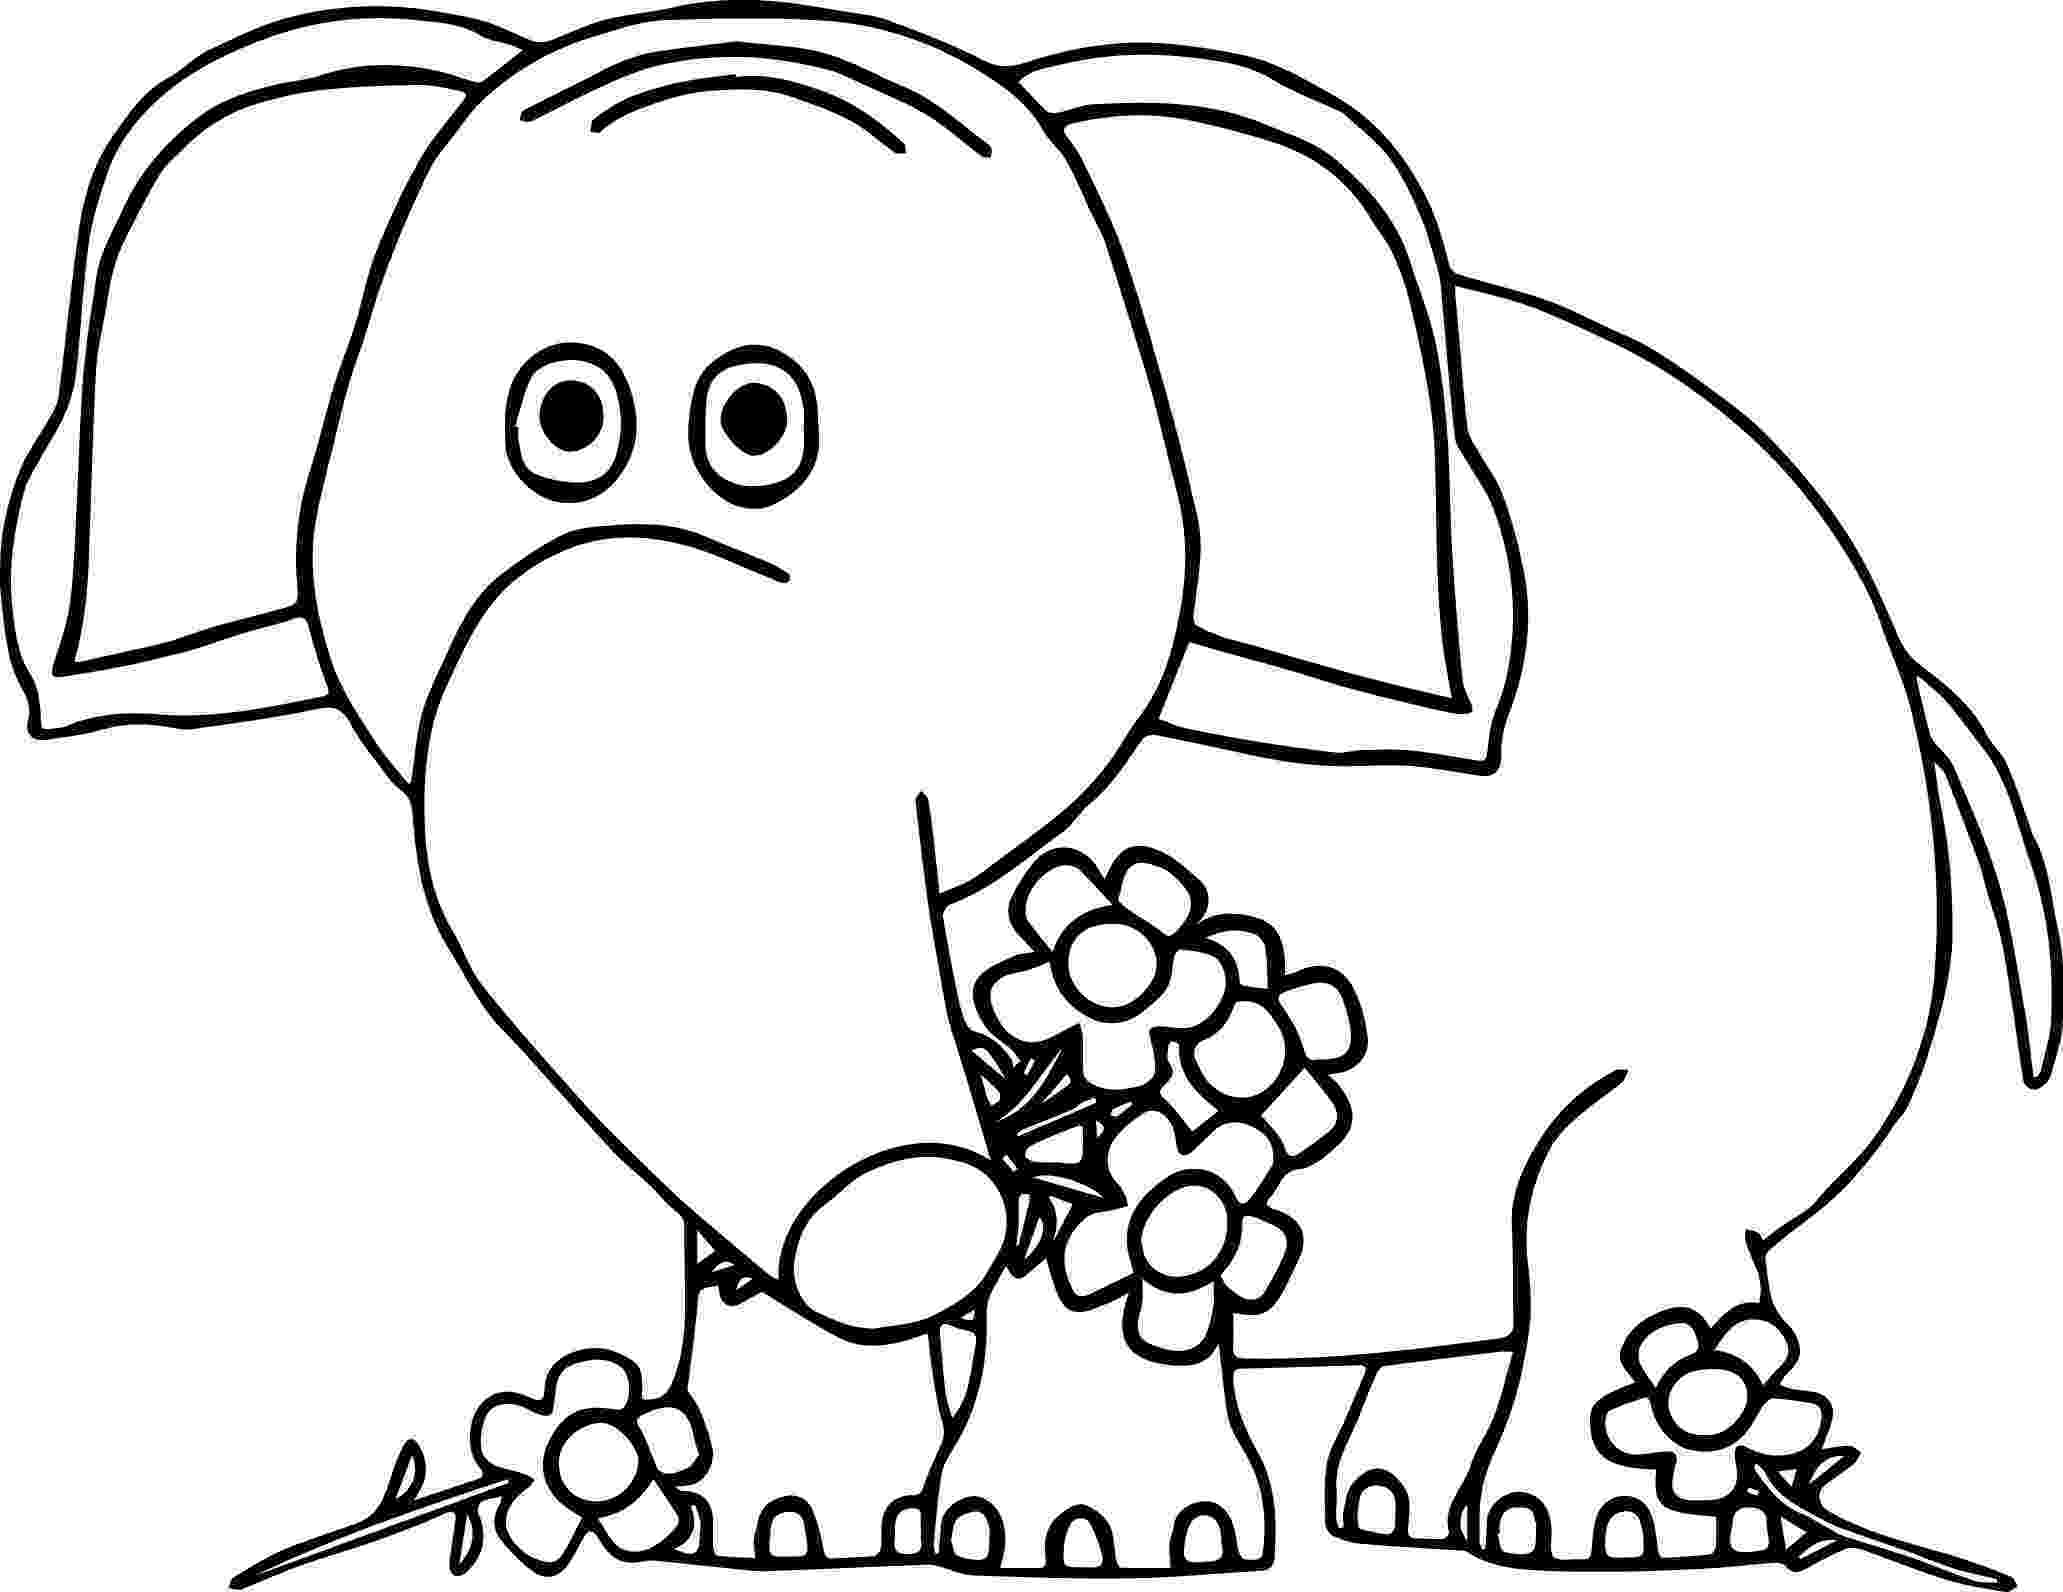 floral elephant coloring page flower series elephant sketch by simonbageldeviantart coloring floral elephant page